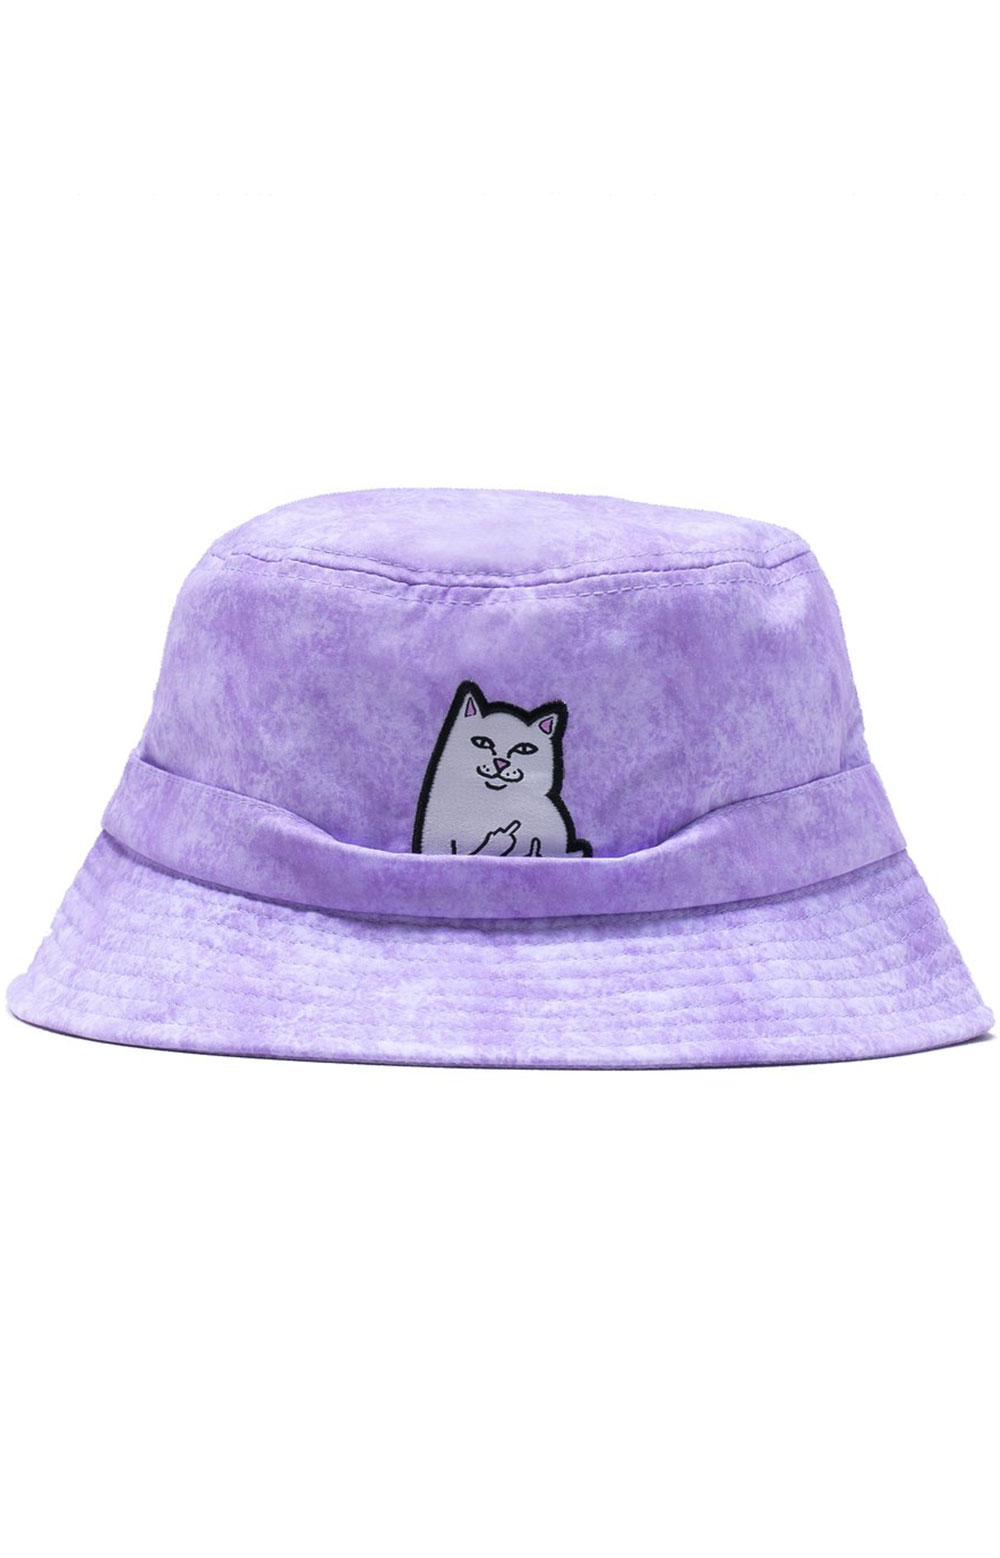 Lord Nermal Bucket Hat - Lavender Mineral Wash  3